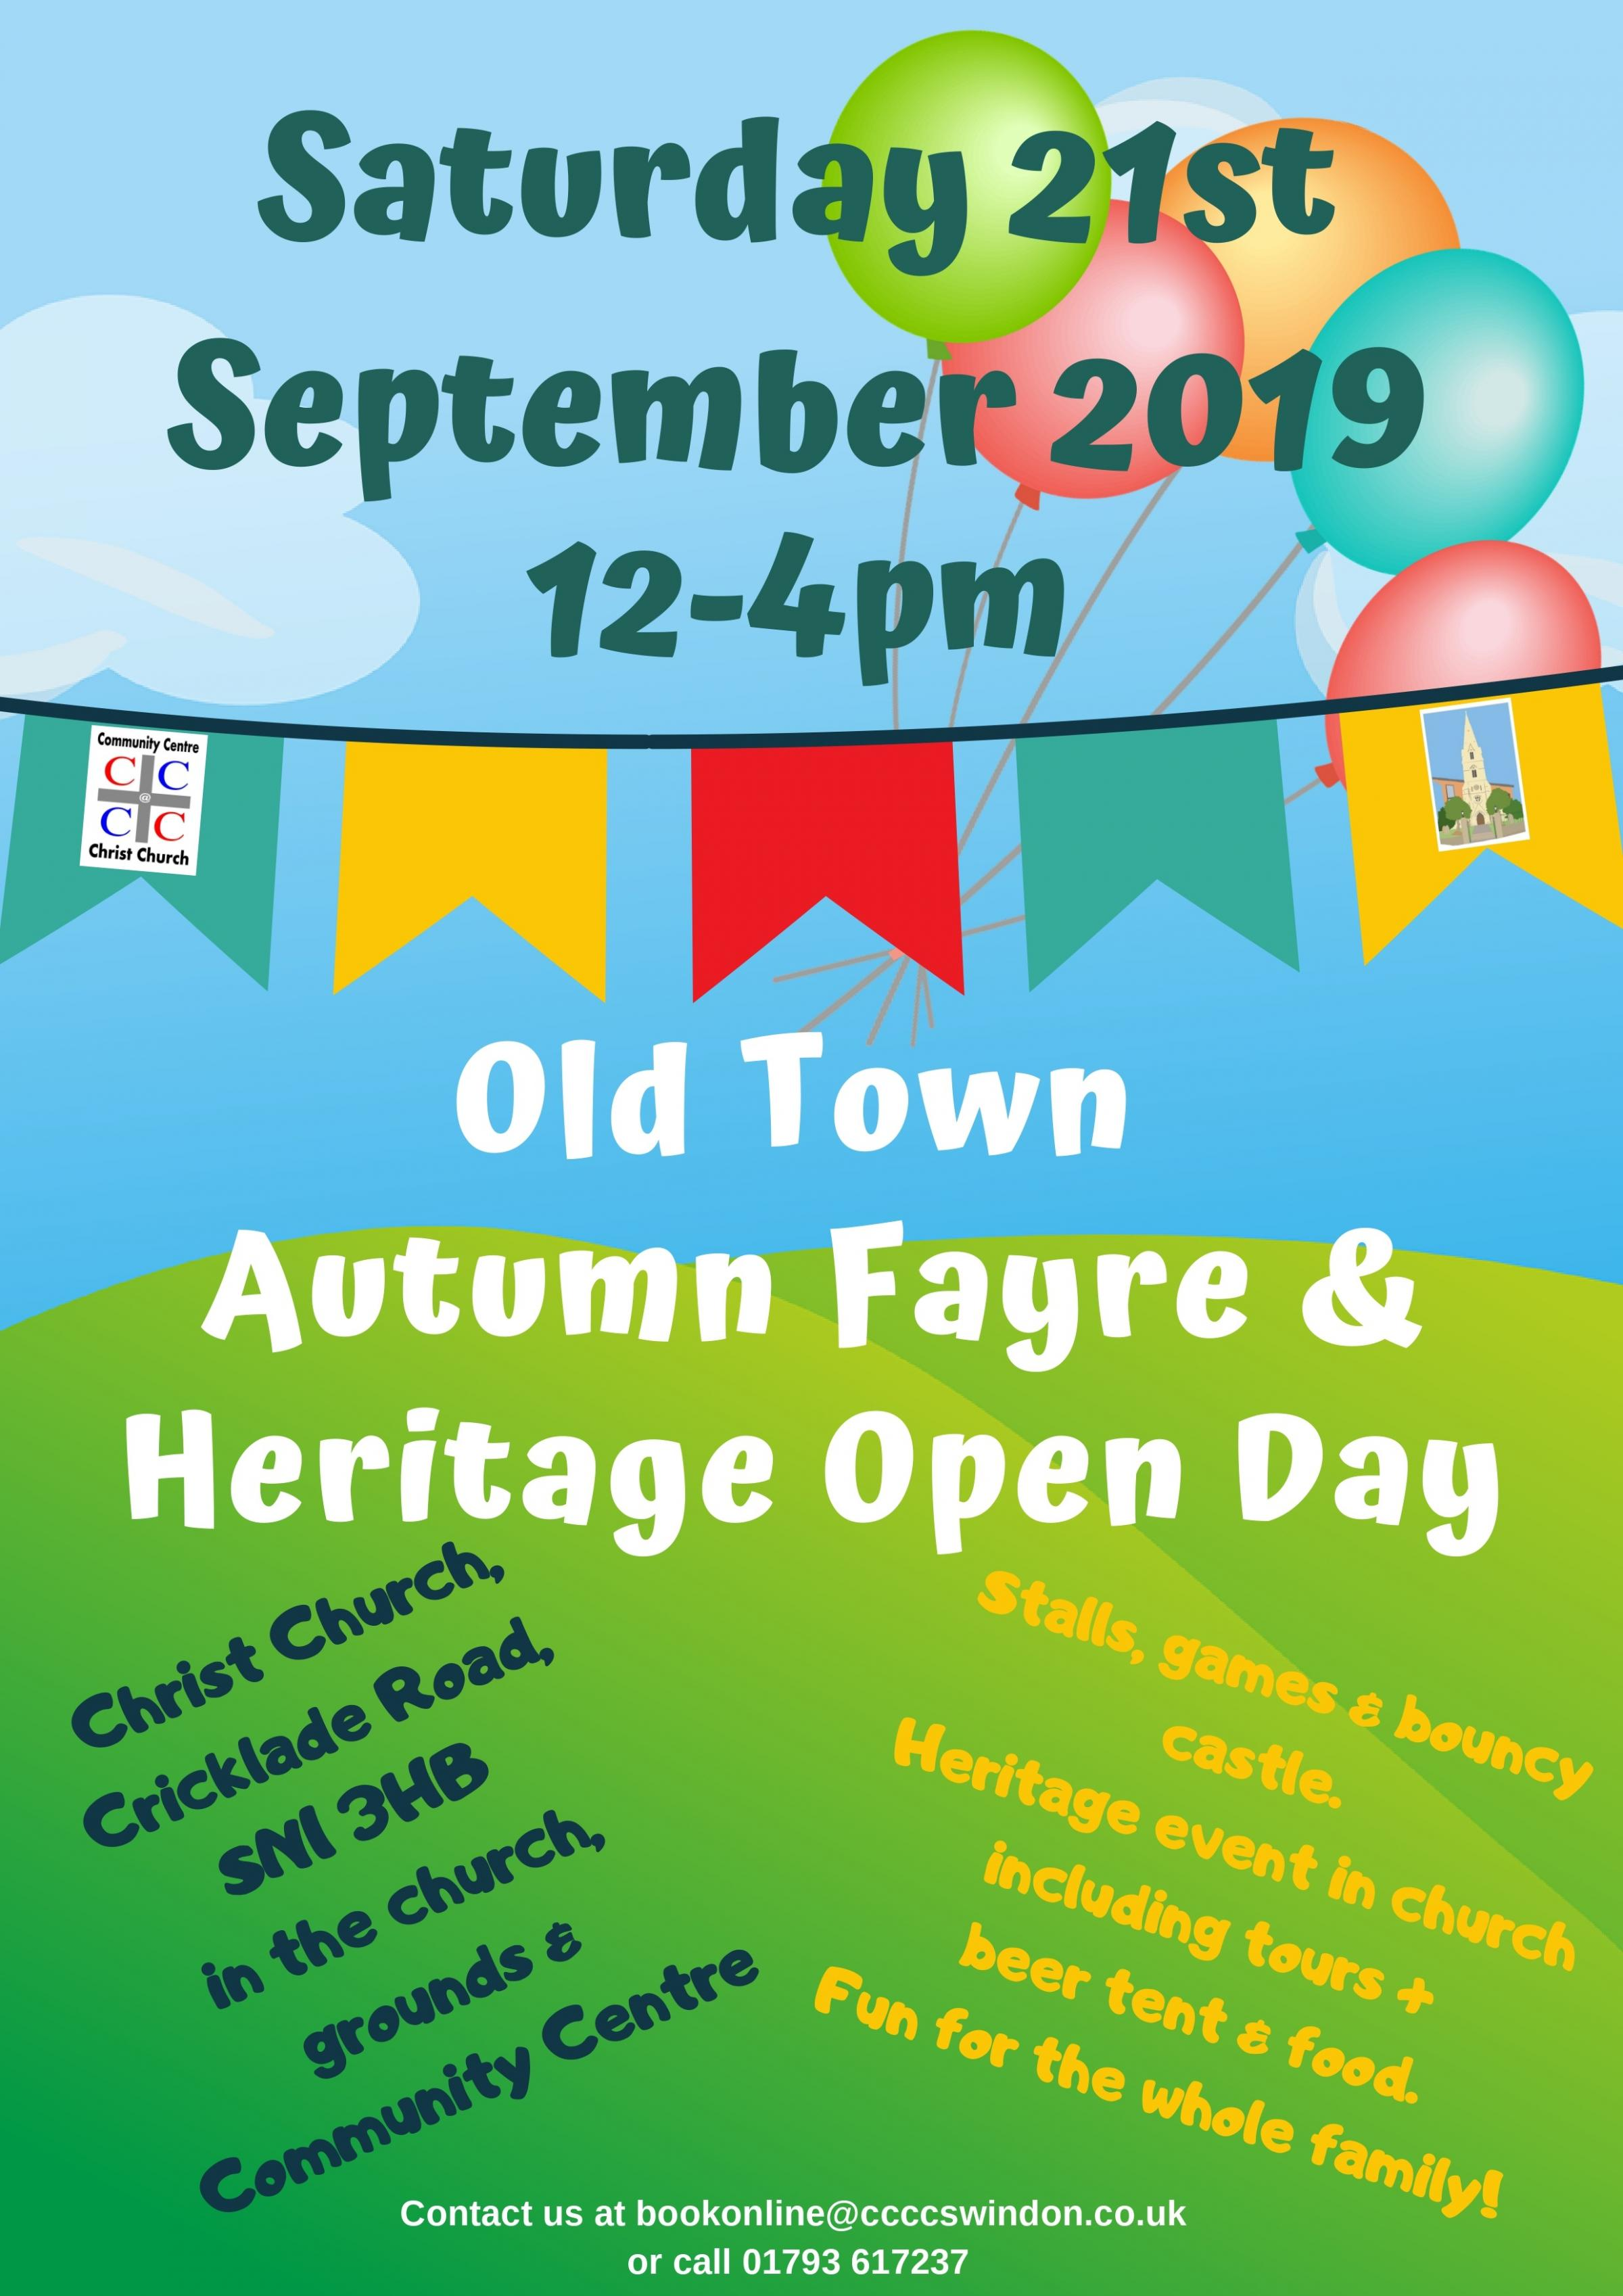 Old Town Autumn Fayre